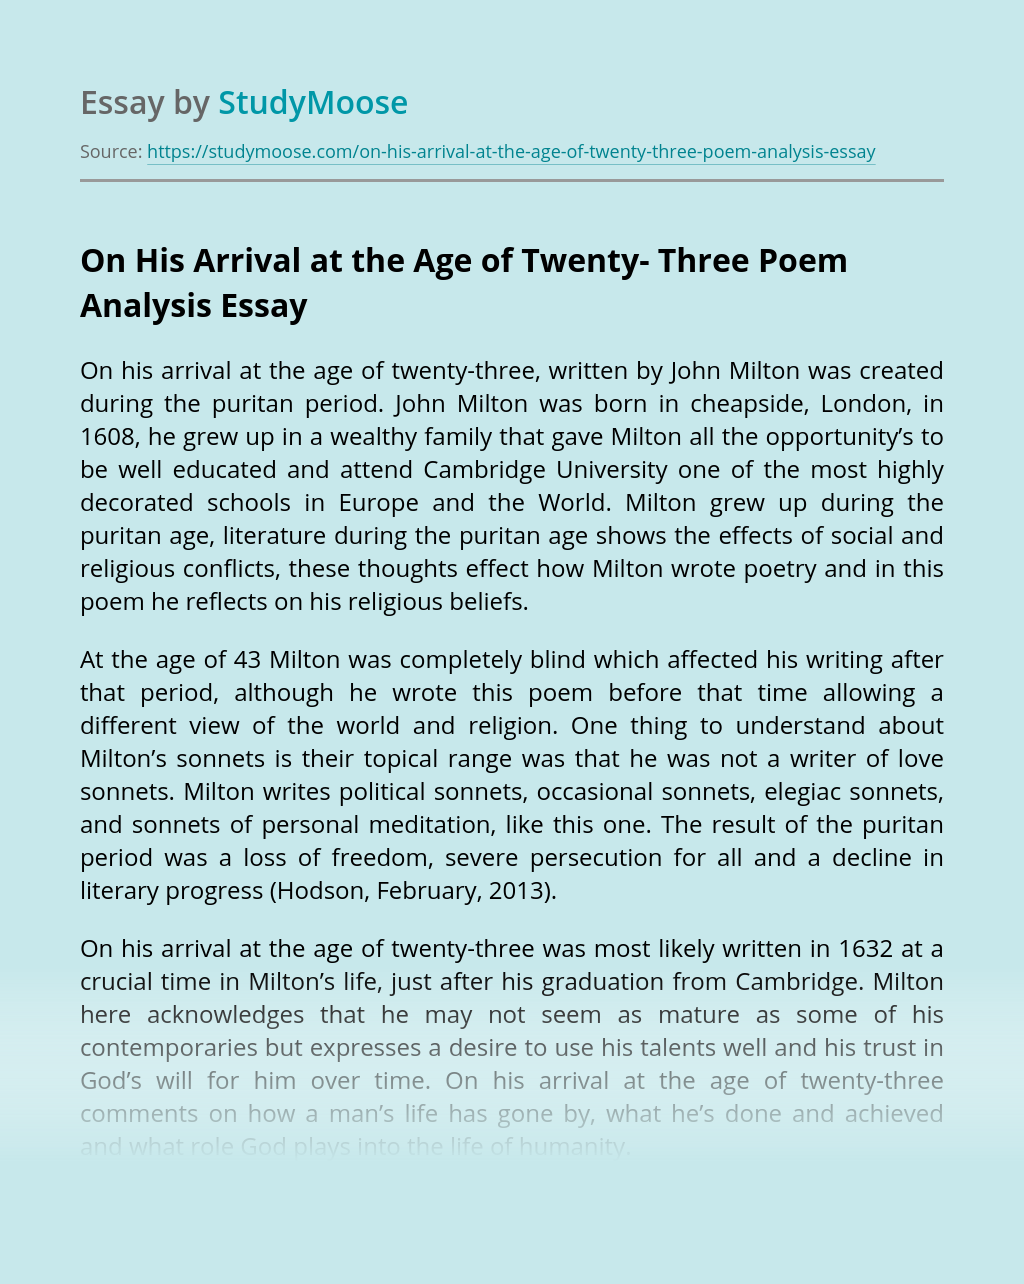 On His Arrival at the Age of Twenty- Three Poem Analysis